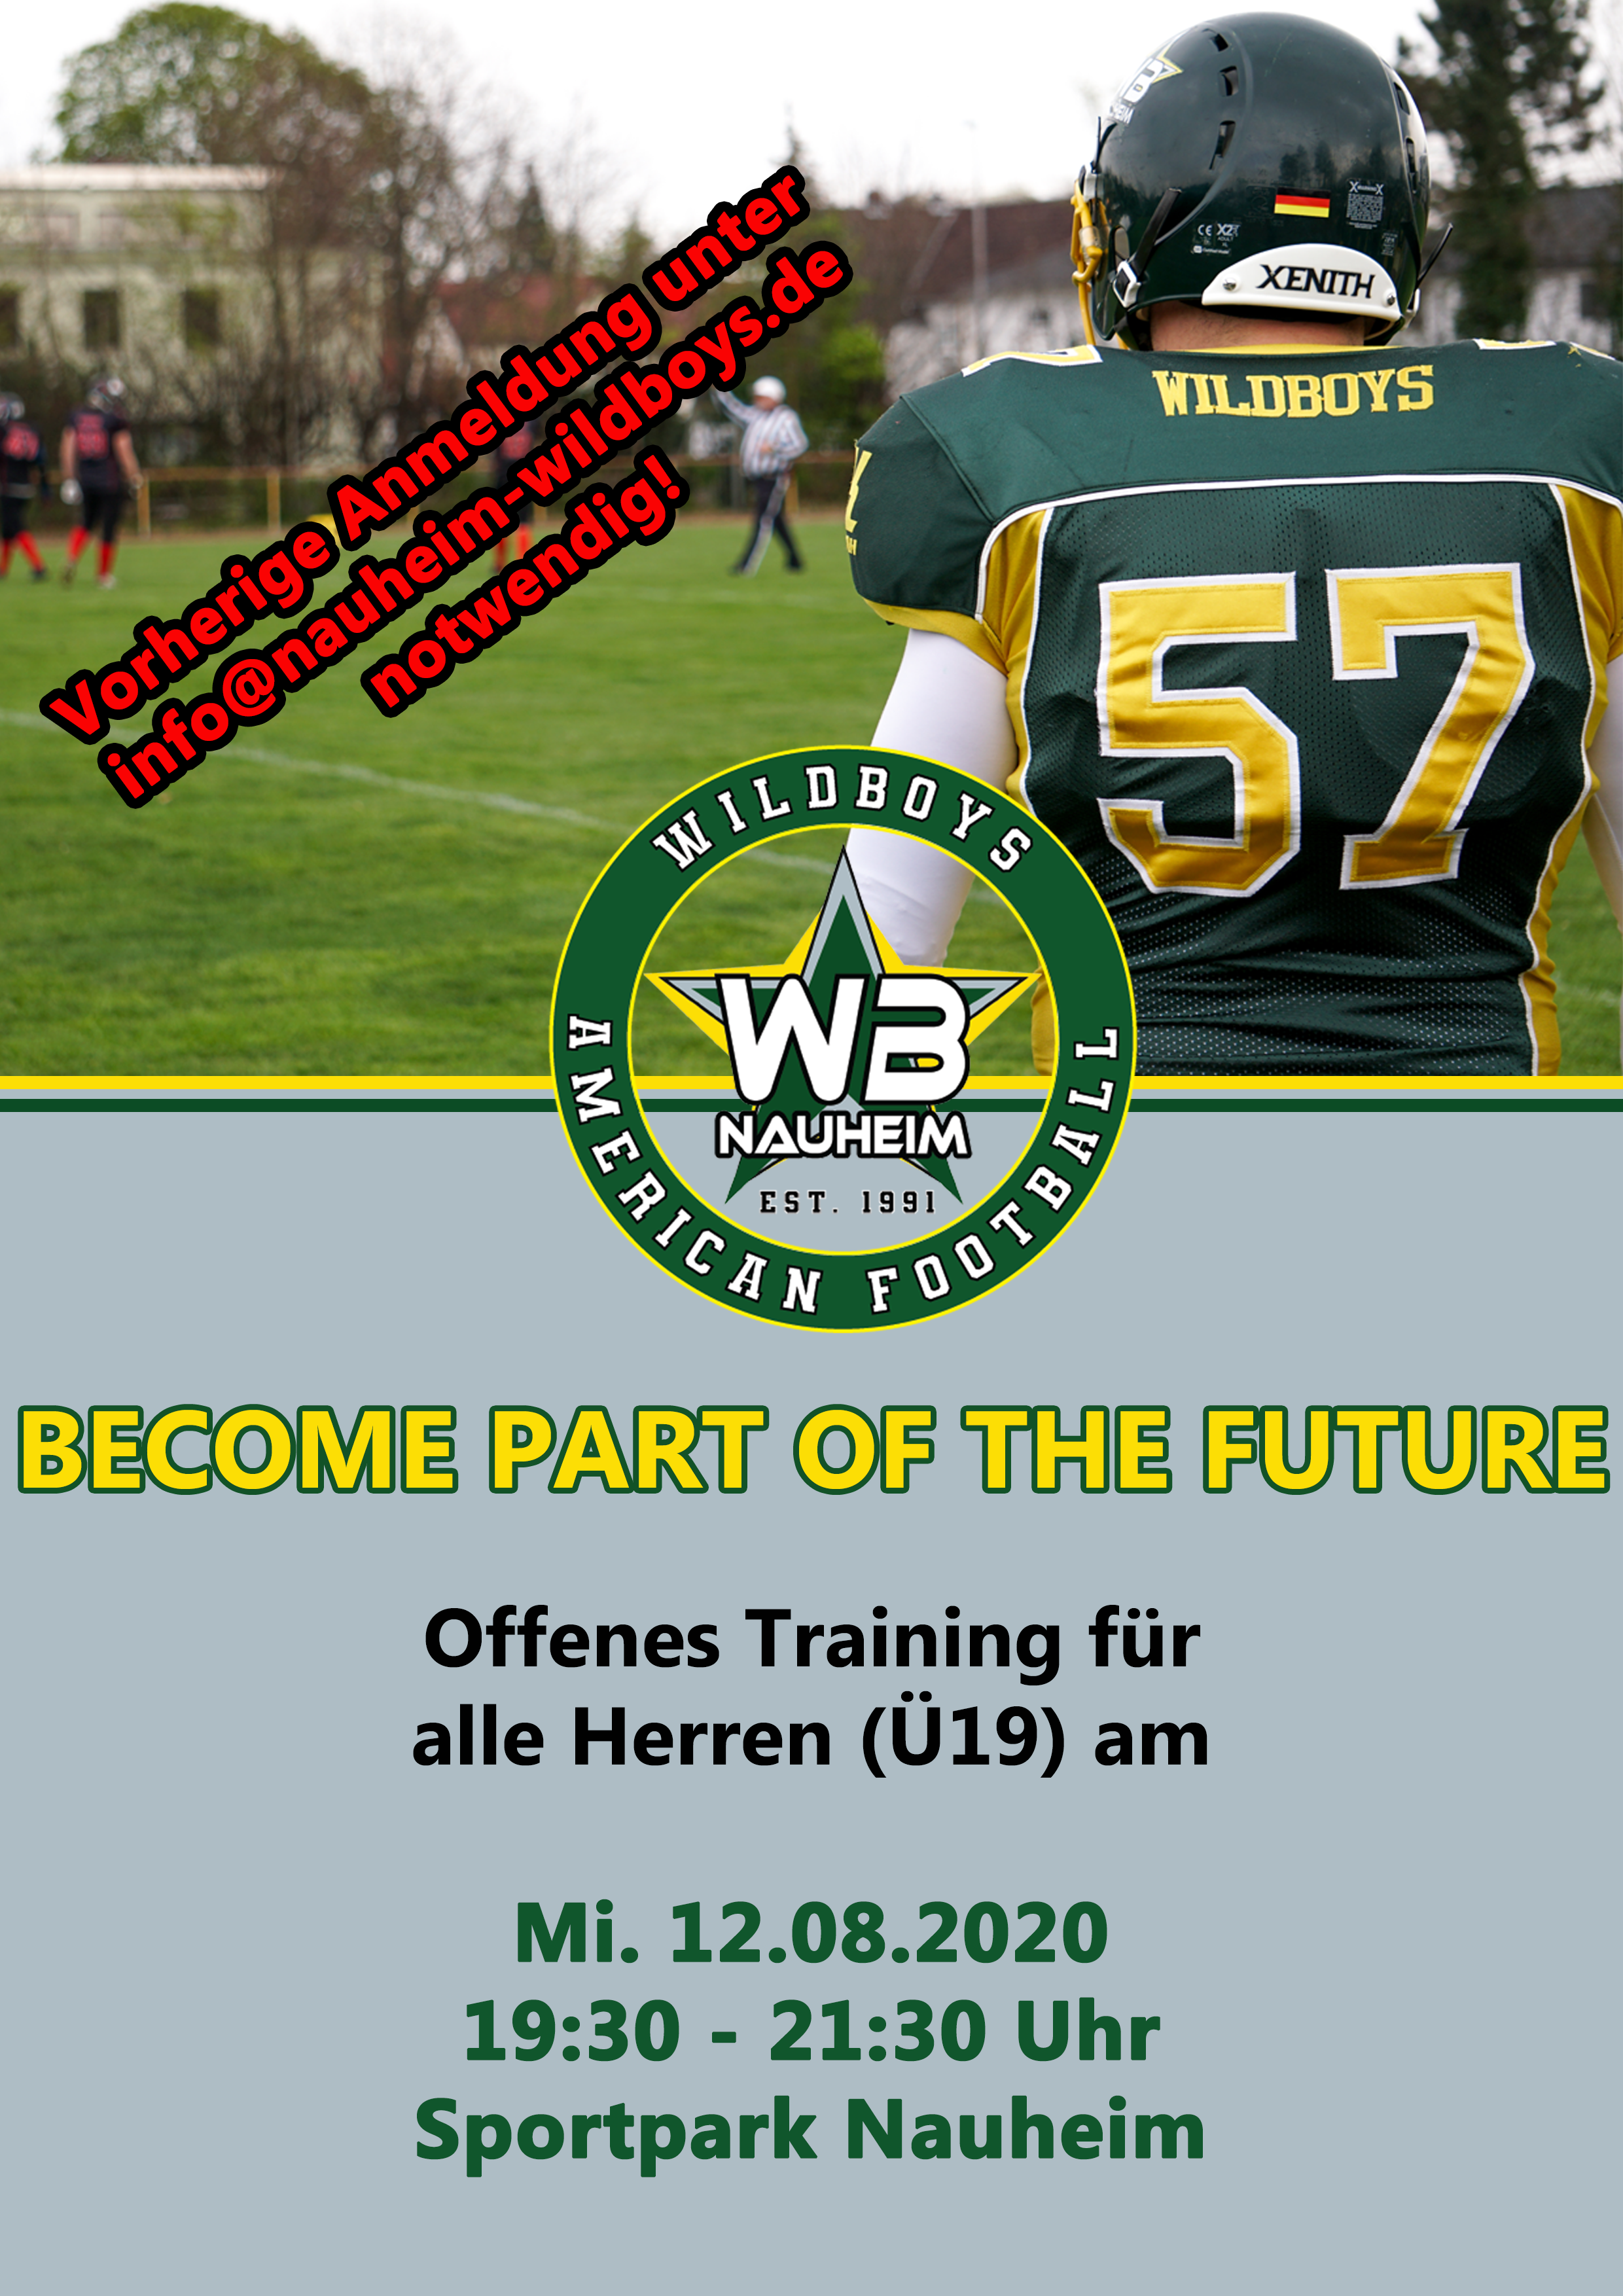 Become part of the future